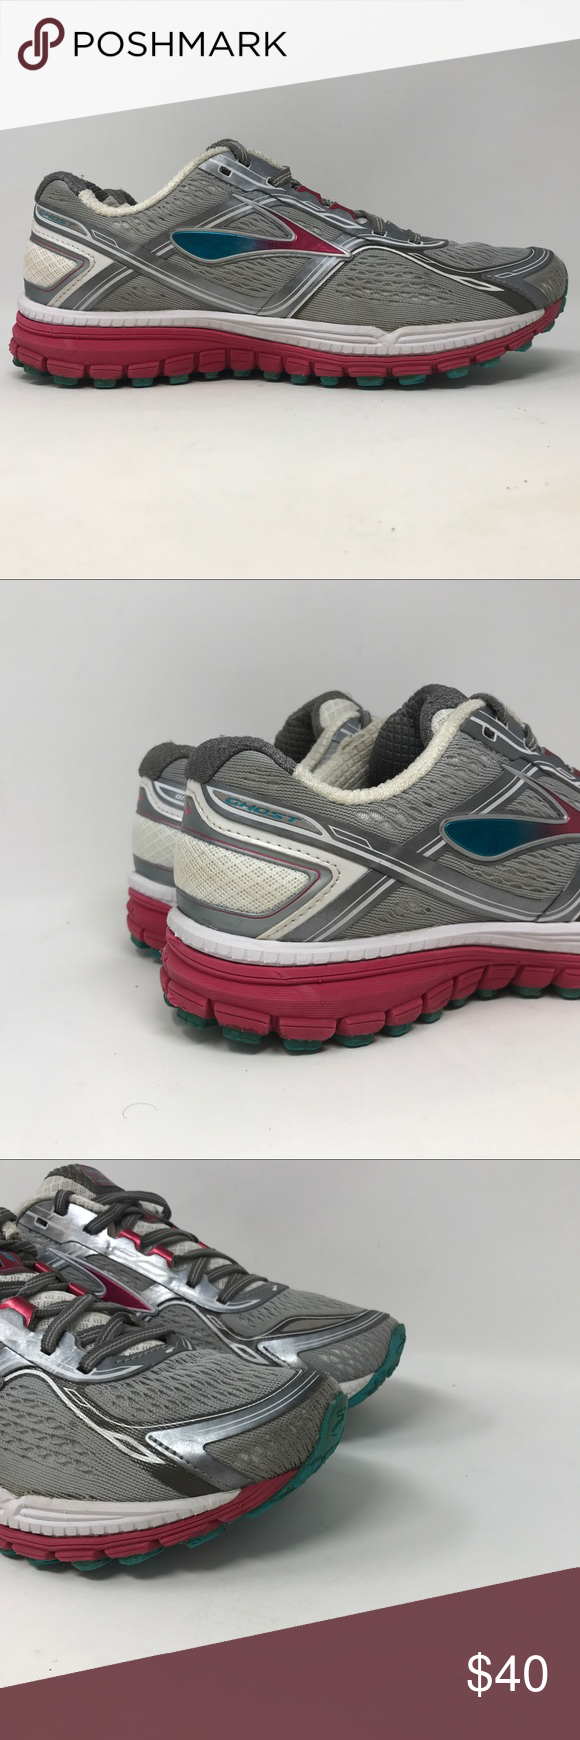 f0e80333cab Brooks Ghost 8 Running Shoes Womens Size 9.5 F7 Brooks Ghost 8 Running  Shoes Womens Size 9.5 Charcoal Bright Rose Bluebird C41 Next day shipping  Brooks ...